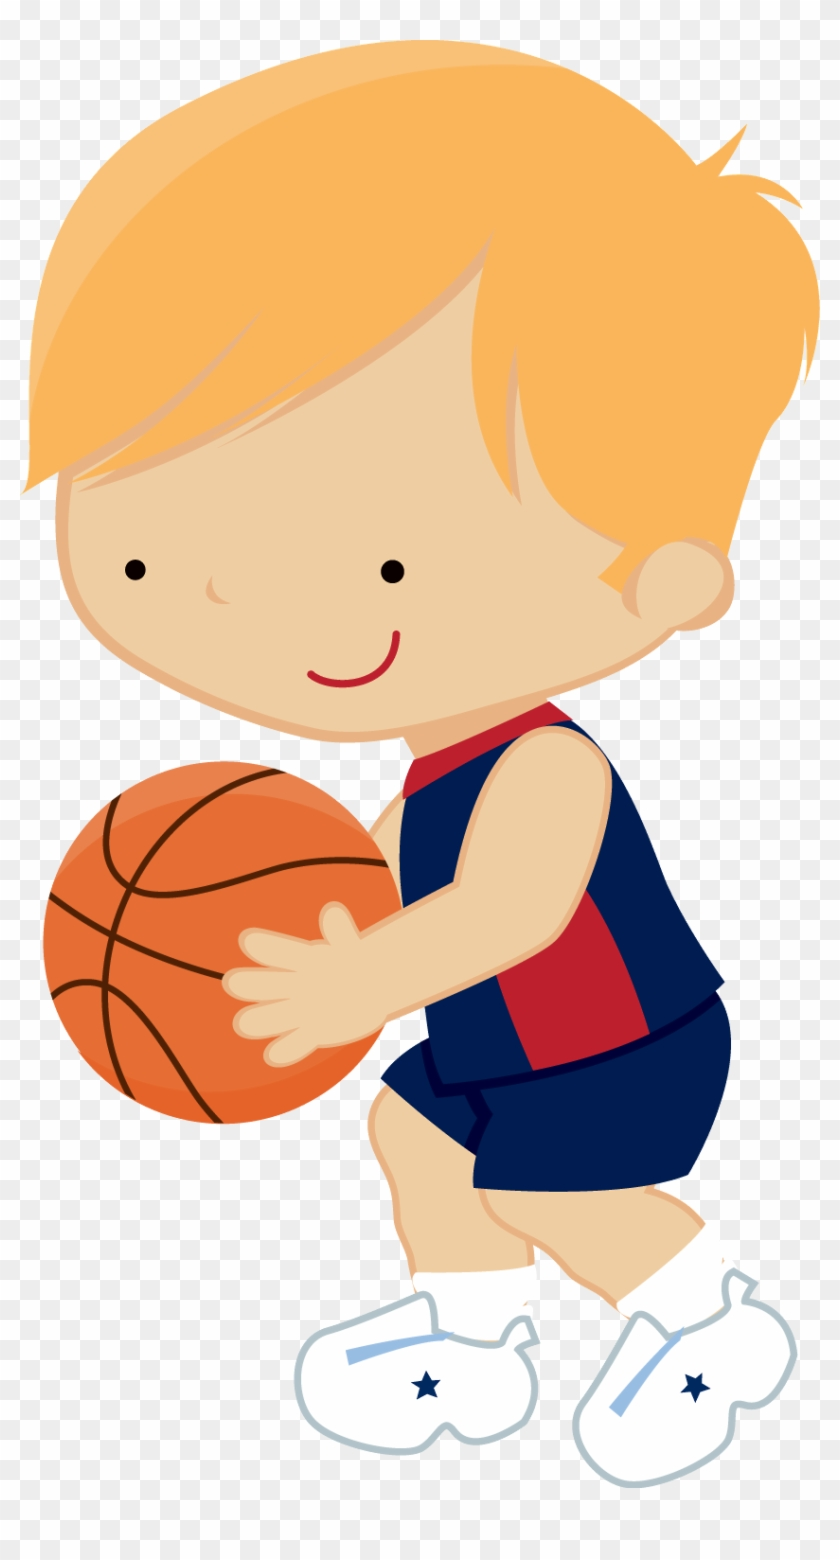 free sports clipart images - HD845×1530